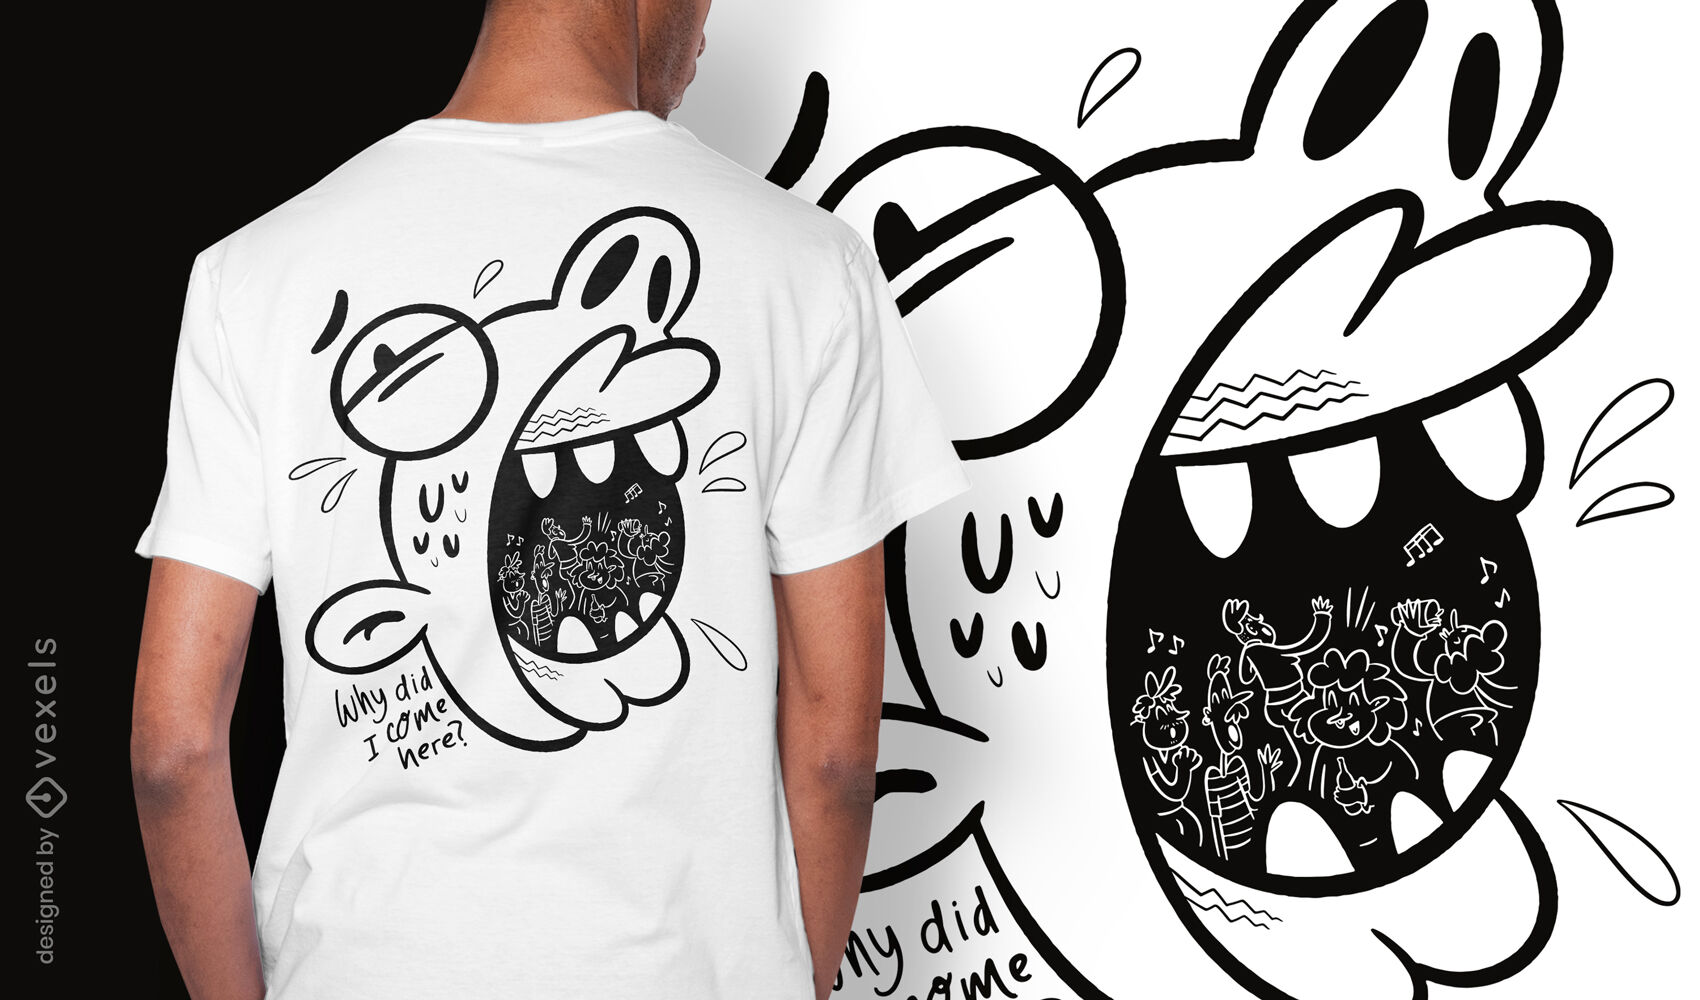 Social anxiety phobia doodle t-shirt design